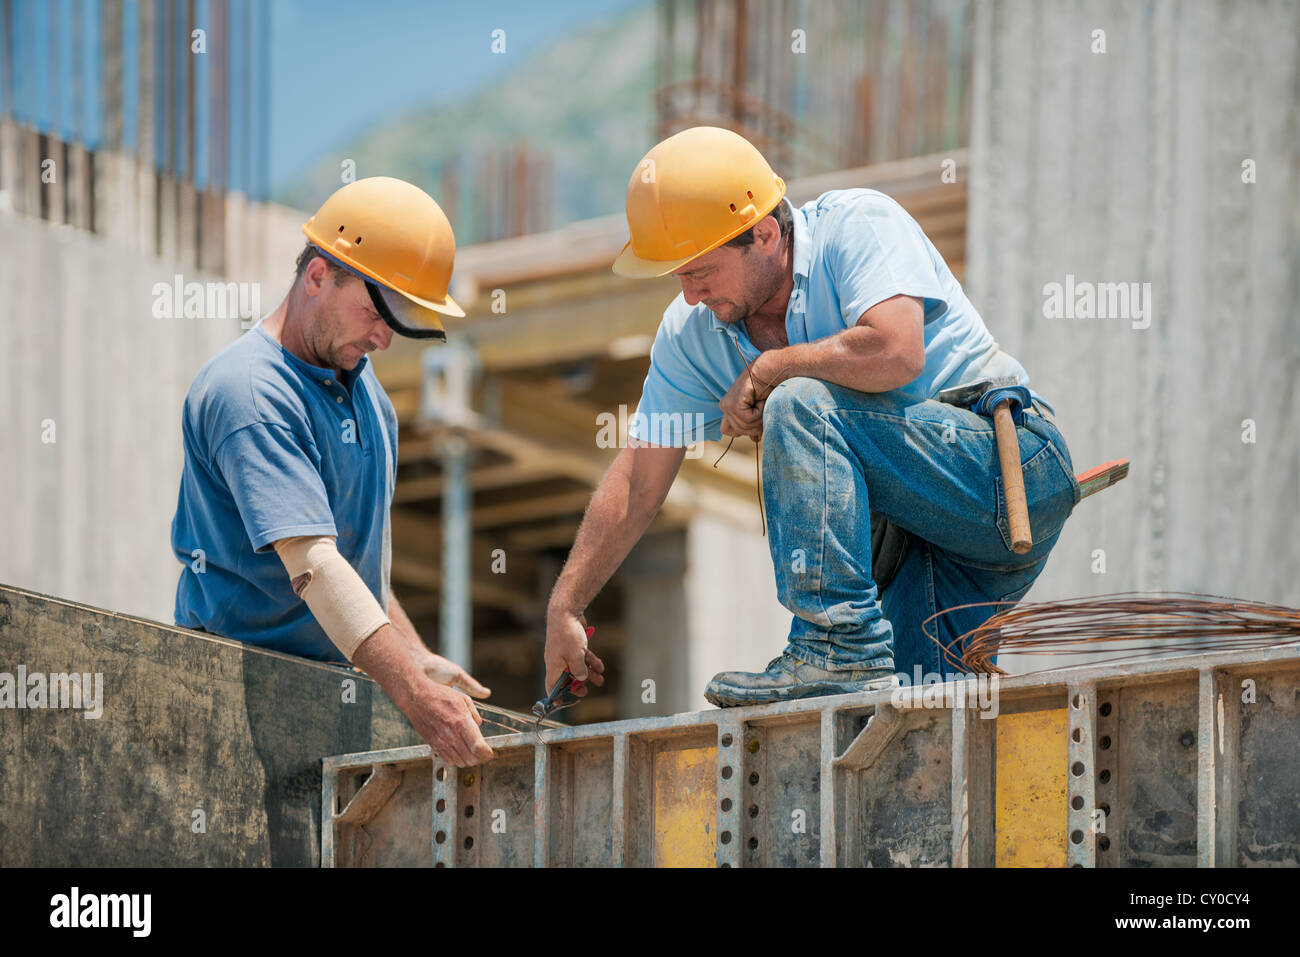 Two construction workers binding concrete formwork frames - Stock Image